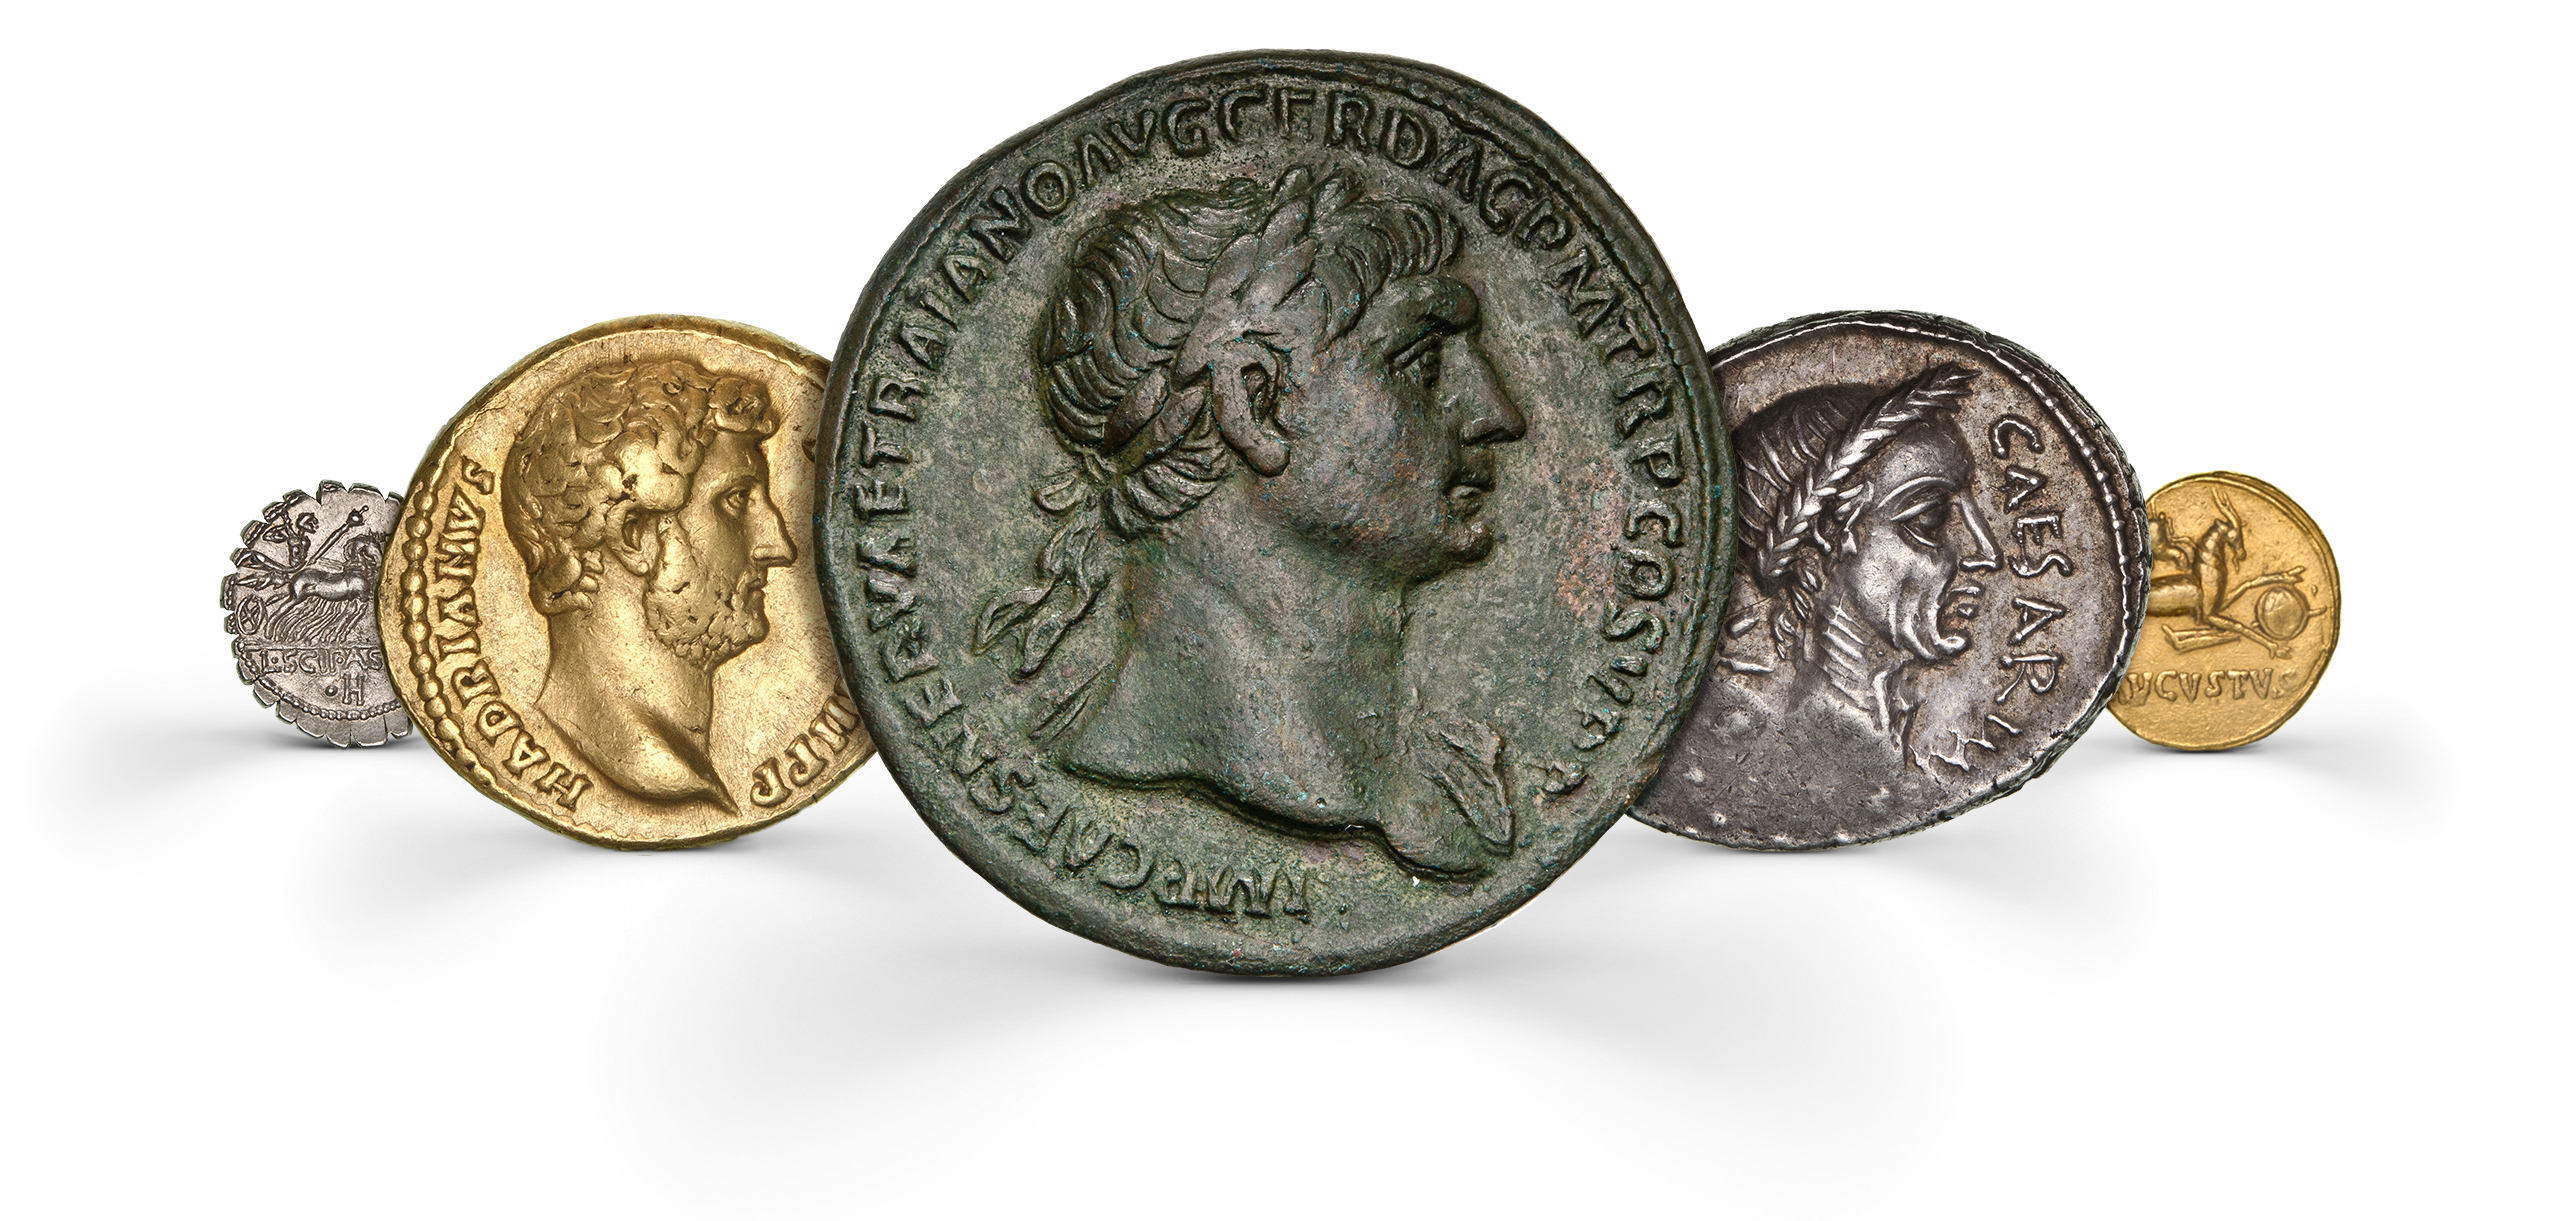 Photography of roman Coins in gold, silver and bronze from several periods, photographed for Morton and Eden in association with Sotheby's sold in auction in London Photography and retouch by Maria Queralt